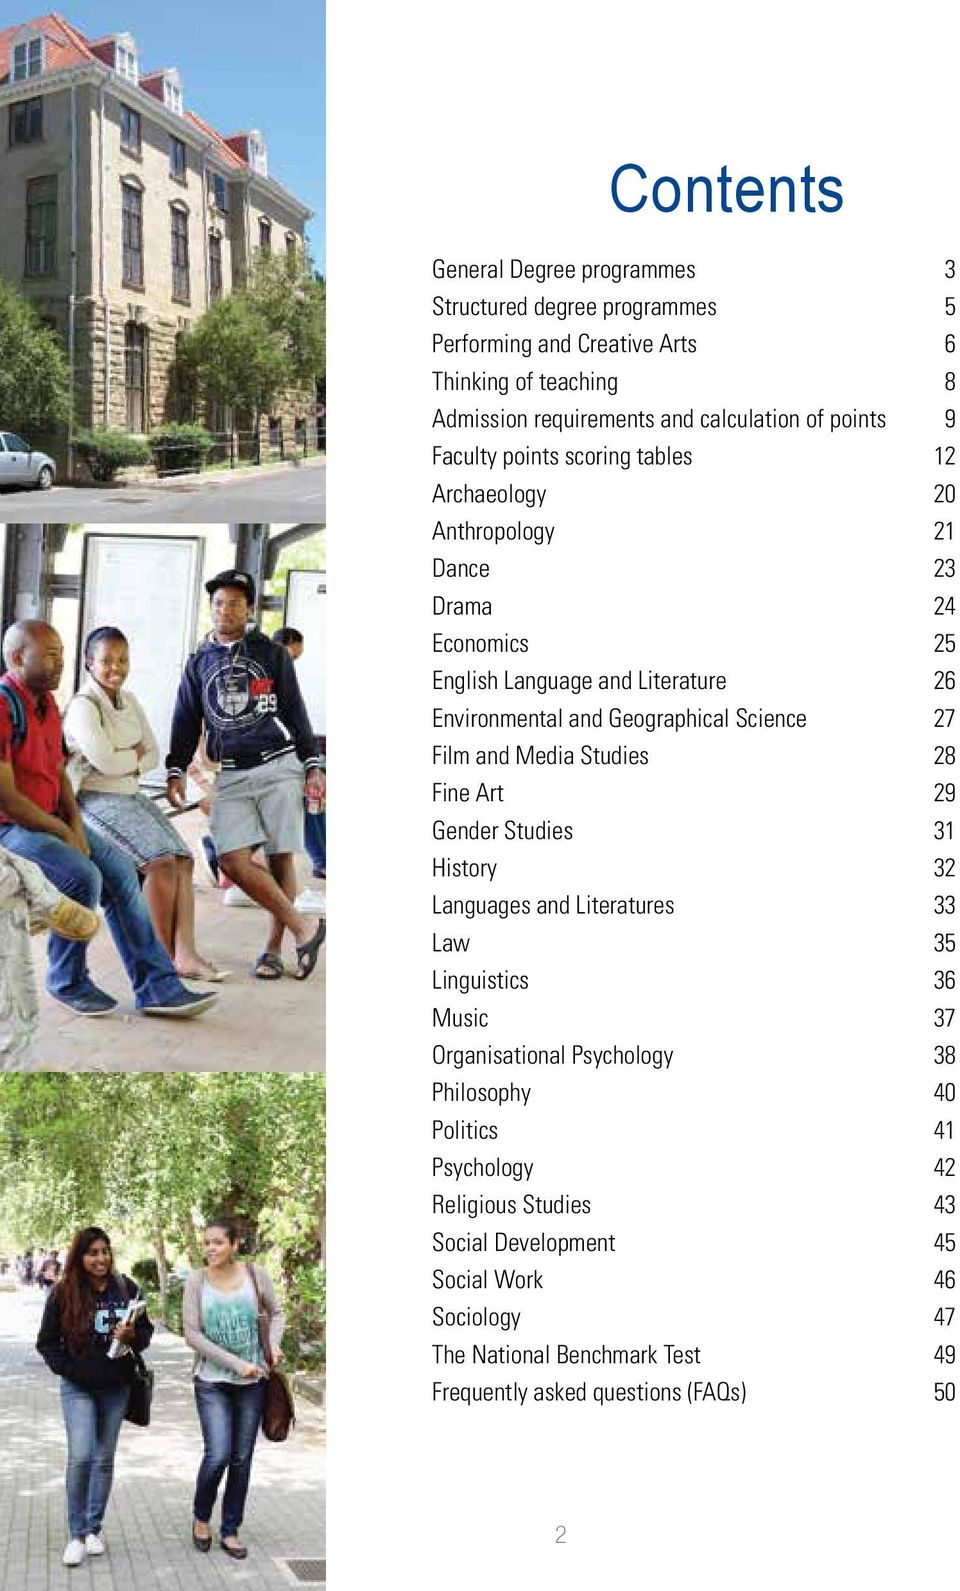 27 Film and Media Studies 28 Fine Art 29 Gender Studies 31 History 32 Languages and Literatures 33 Law 35 Linguistics 36 Music 37 Organisational Psychology 38 Philosophy